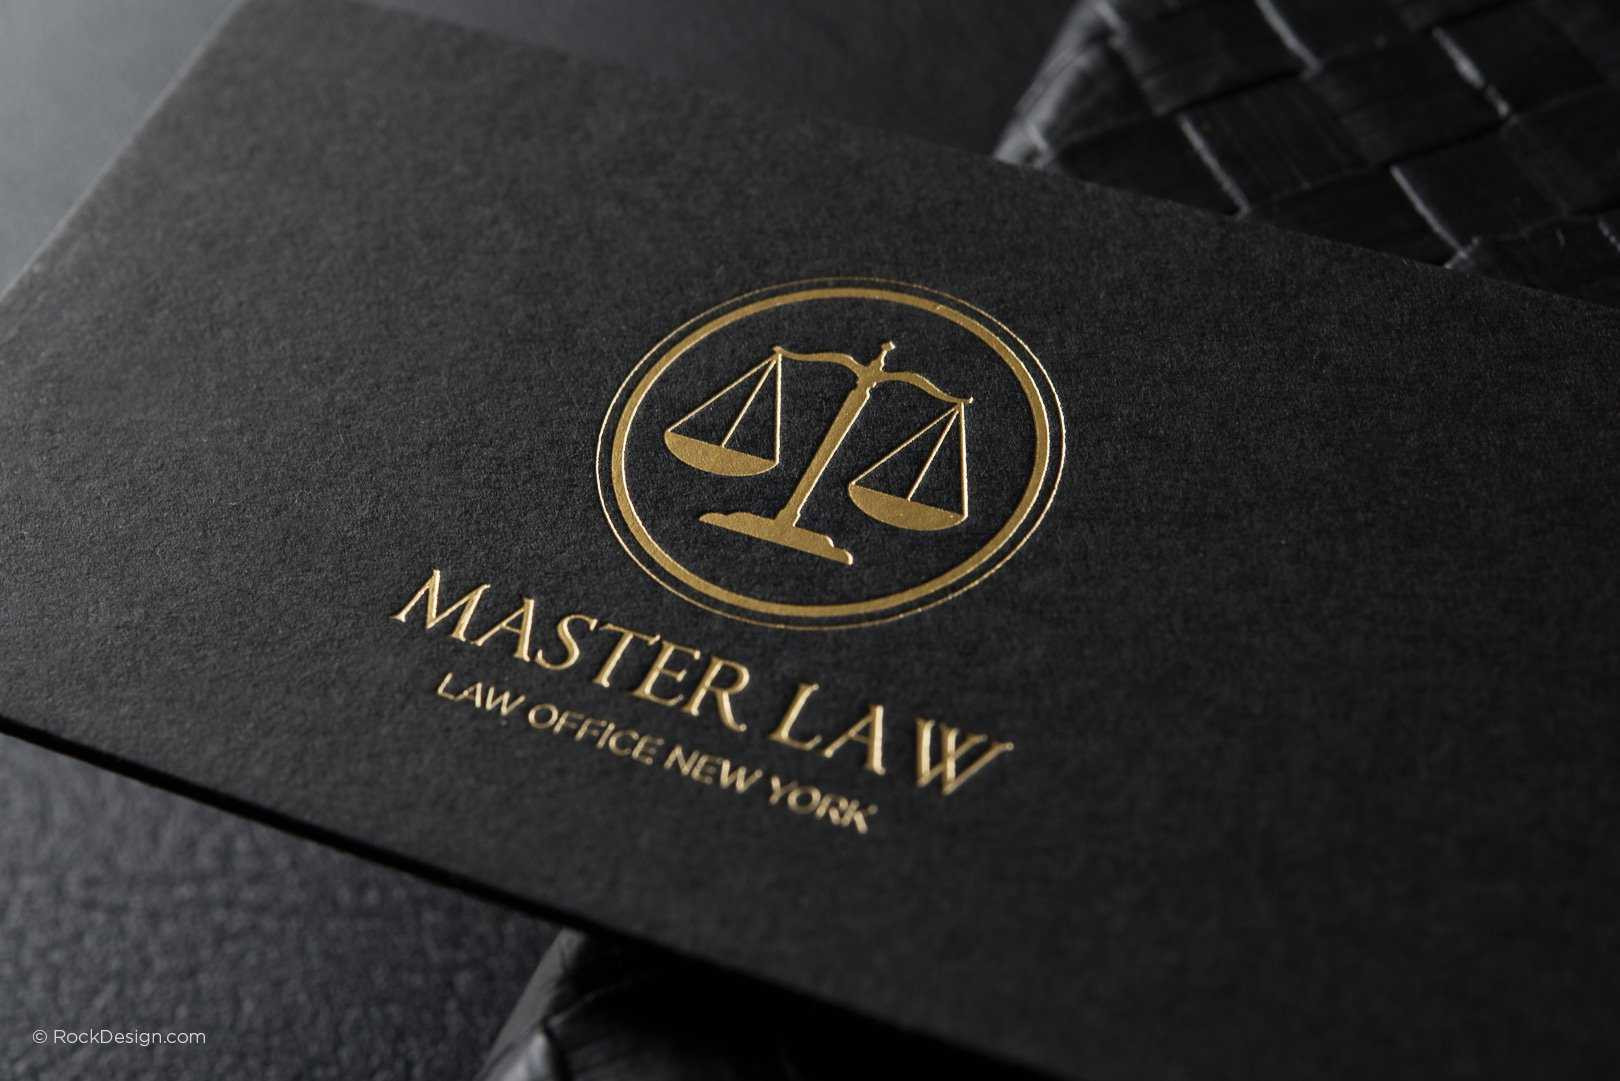 Free Lawyer Business Card Template | Rockdesign Inside Lawyer Business Cards Templates